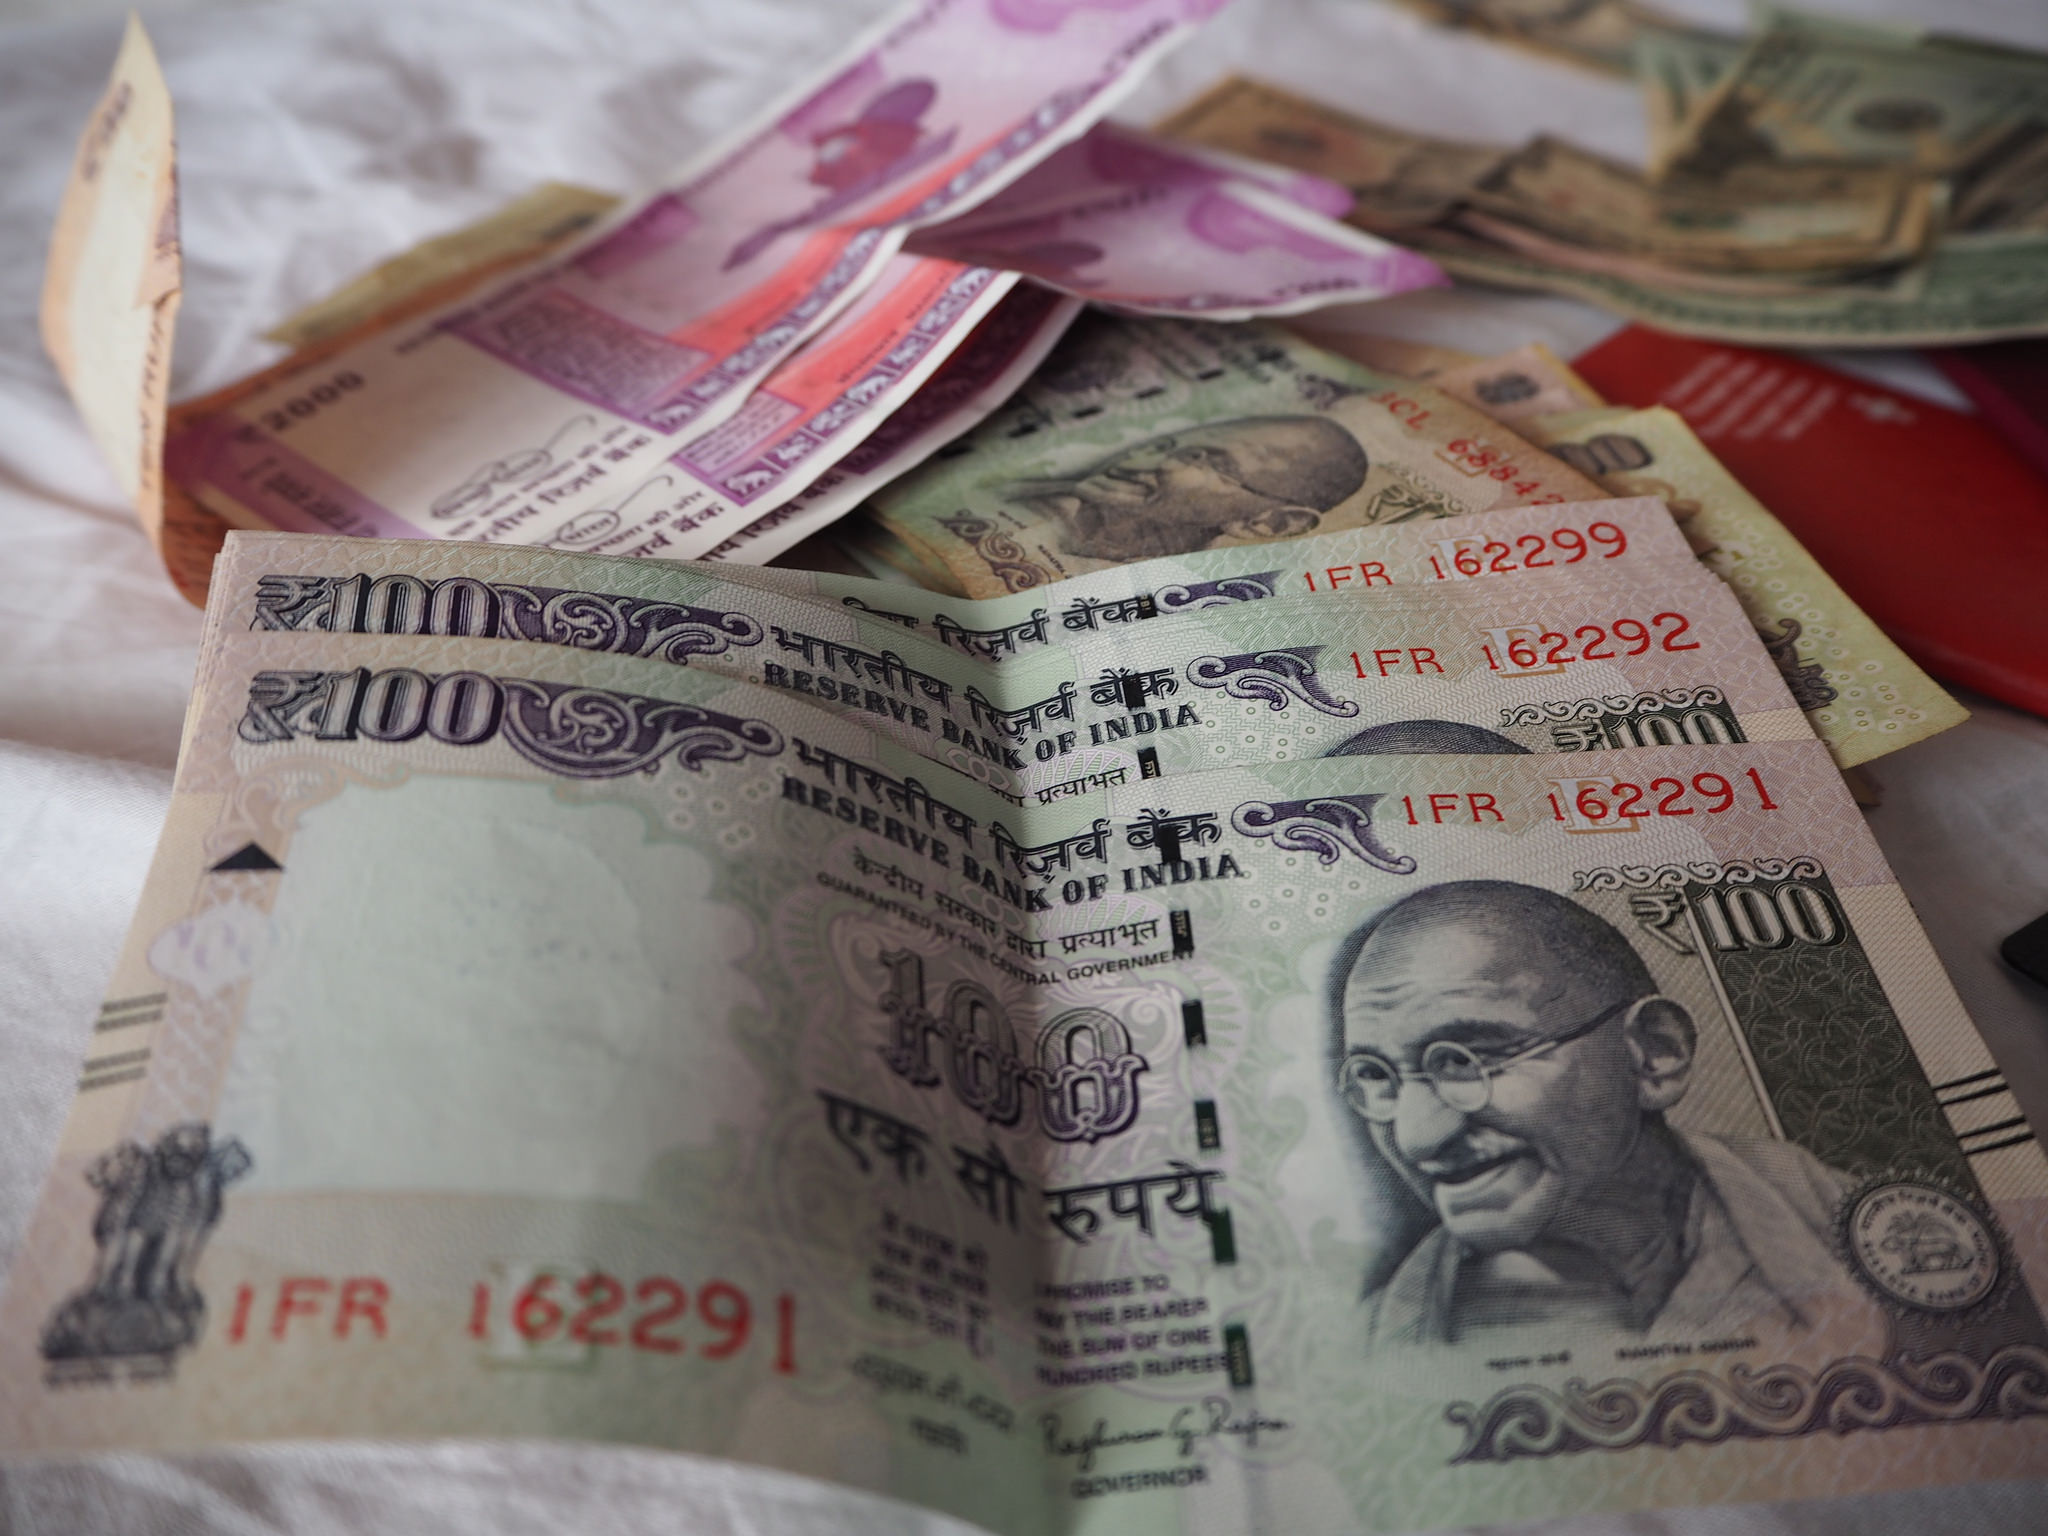 RBI to print new Rs 100 currency notes?